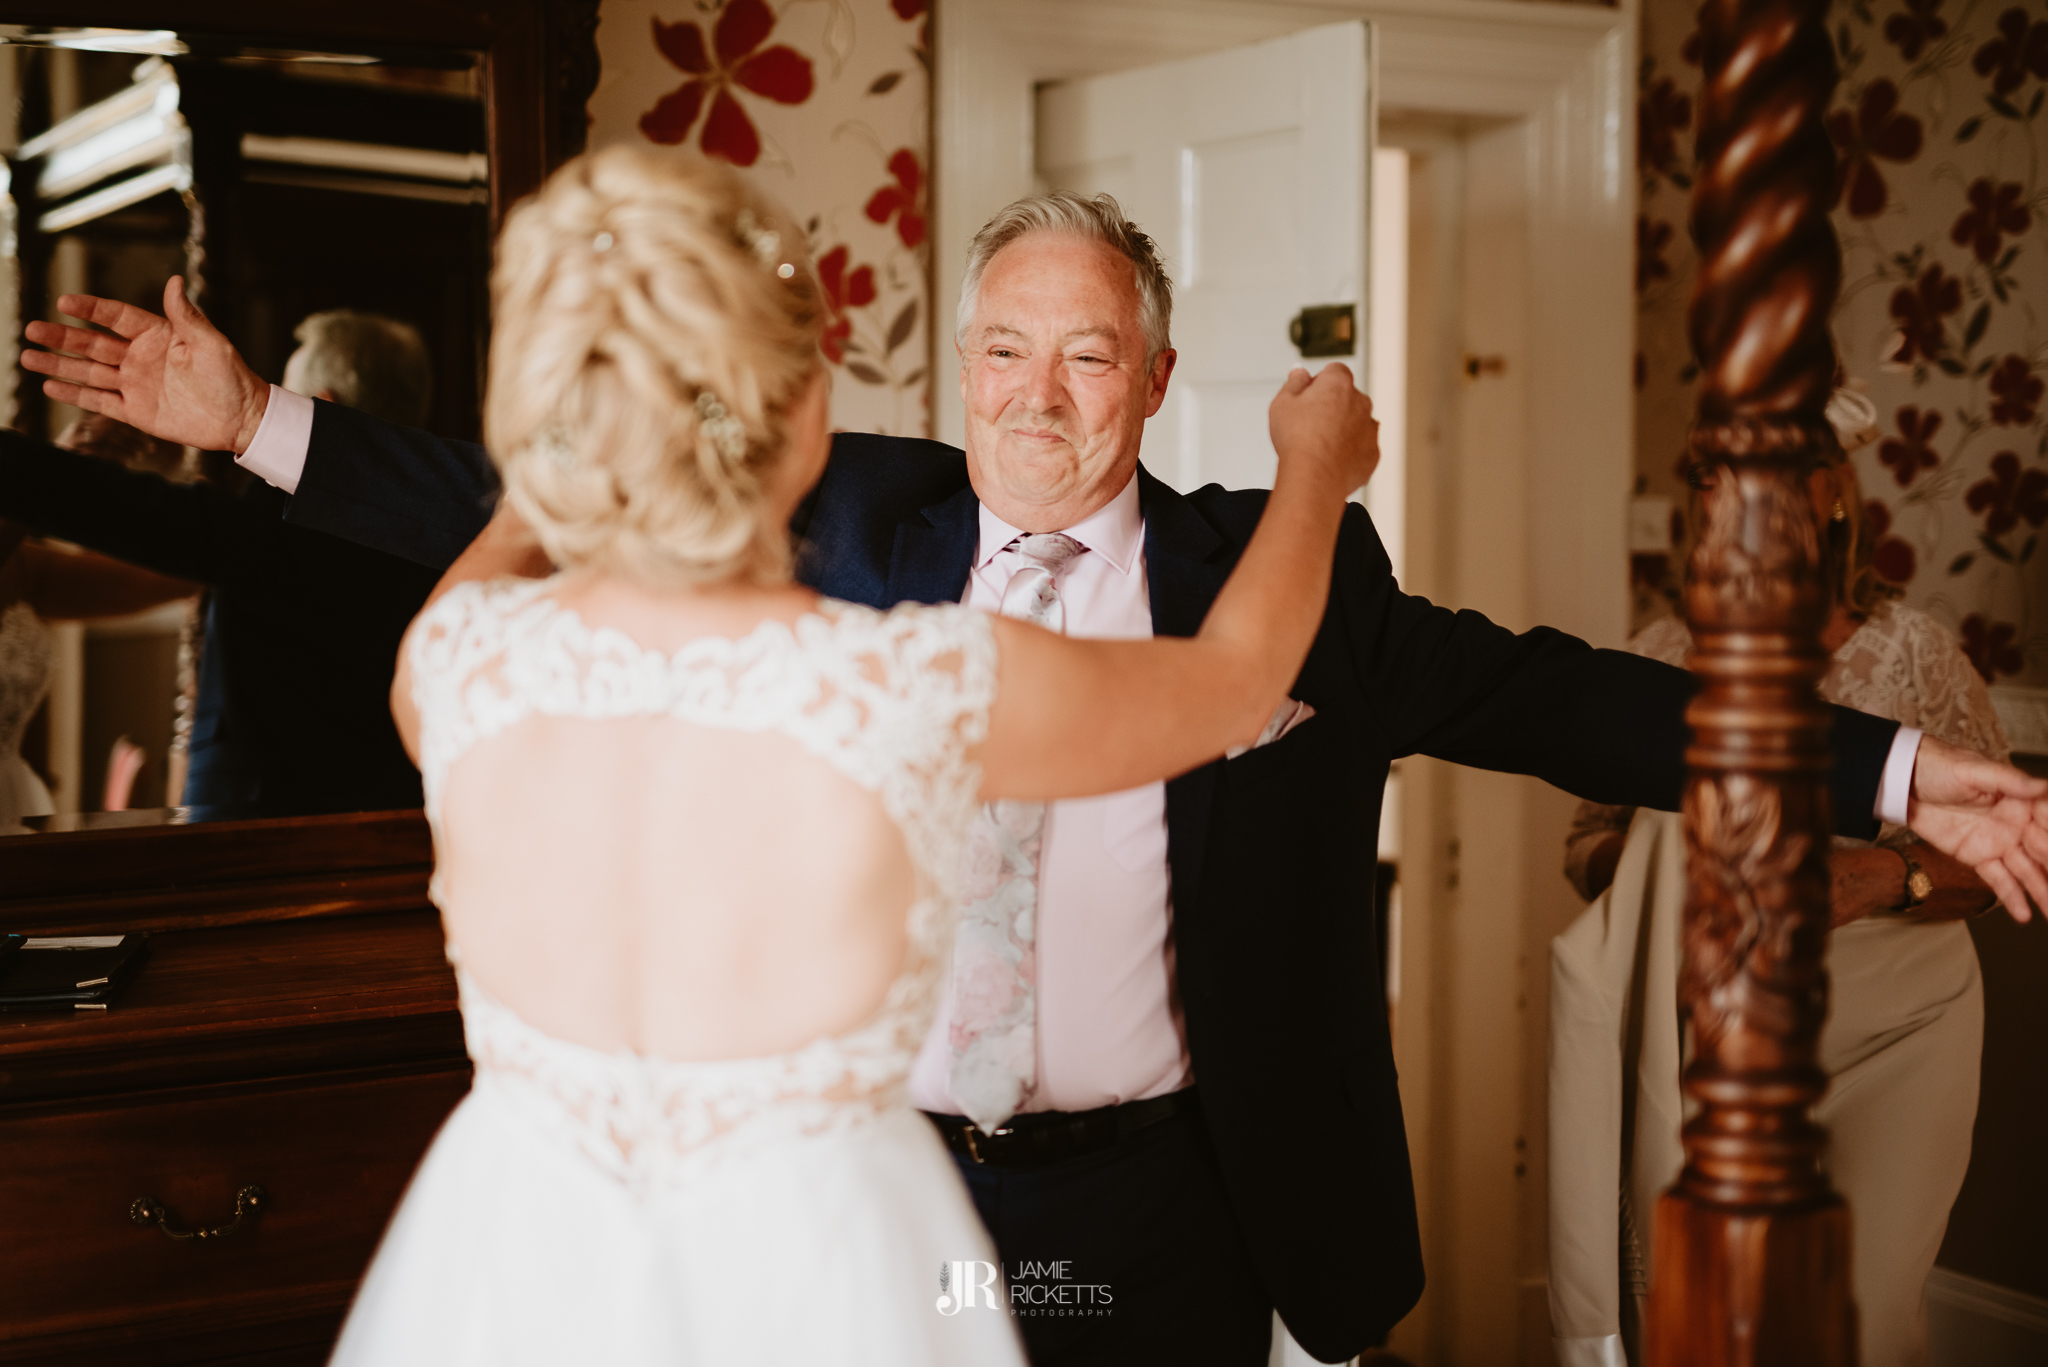 Wroxeter-Hotel-Wedding-Photography-In-Shropshire-By-Shropshire-Wedding-Photographer-Jamie-Ricketts-038.JPG